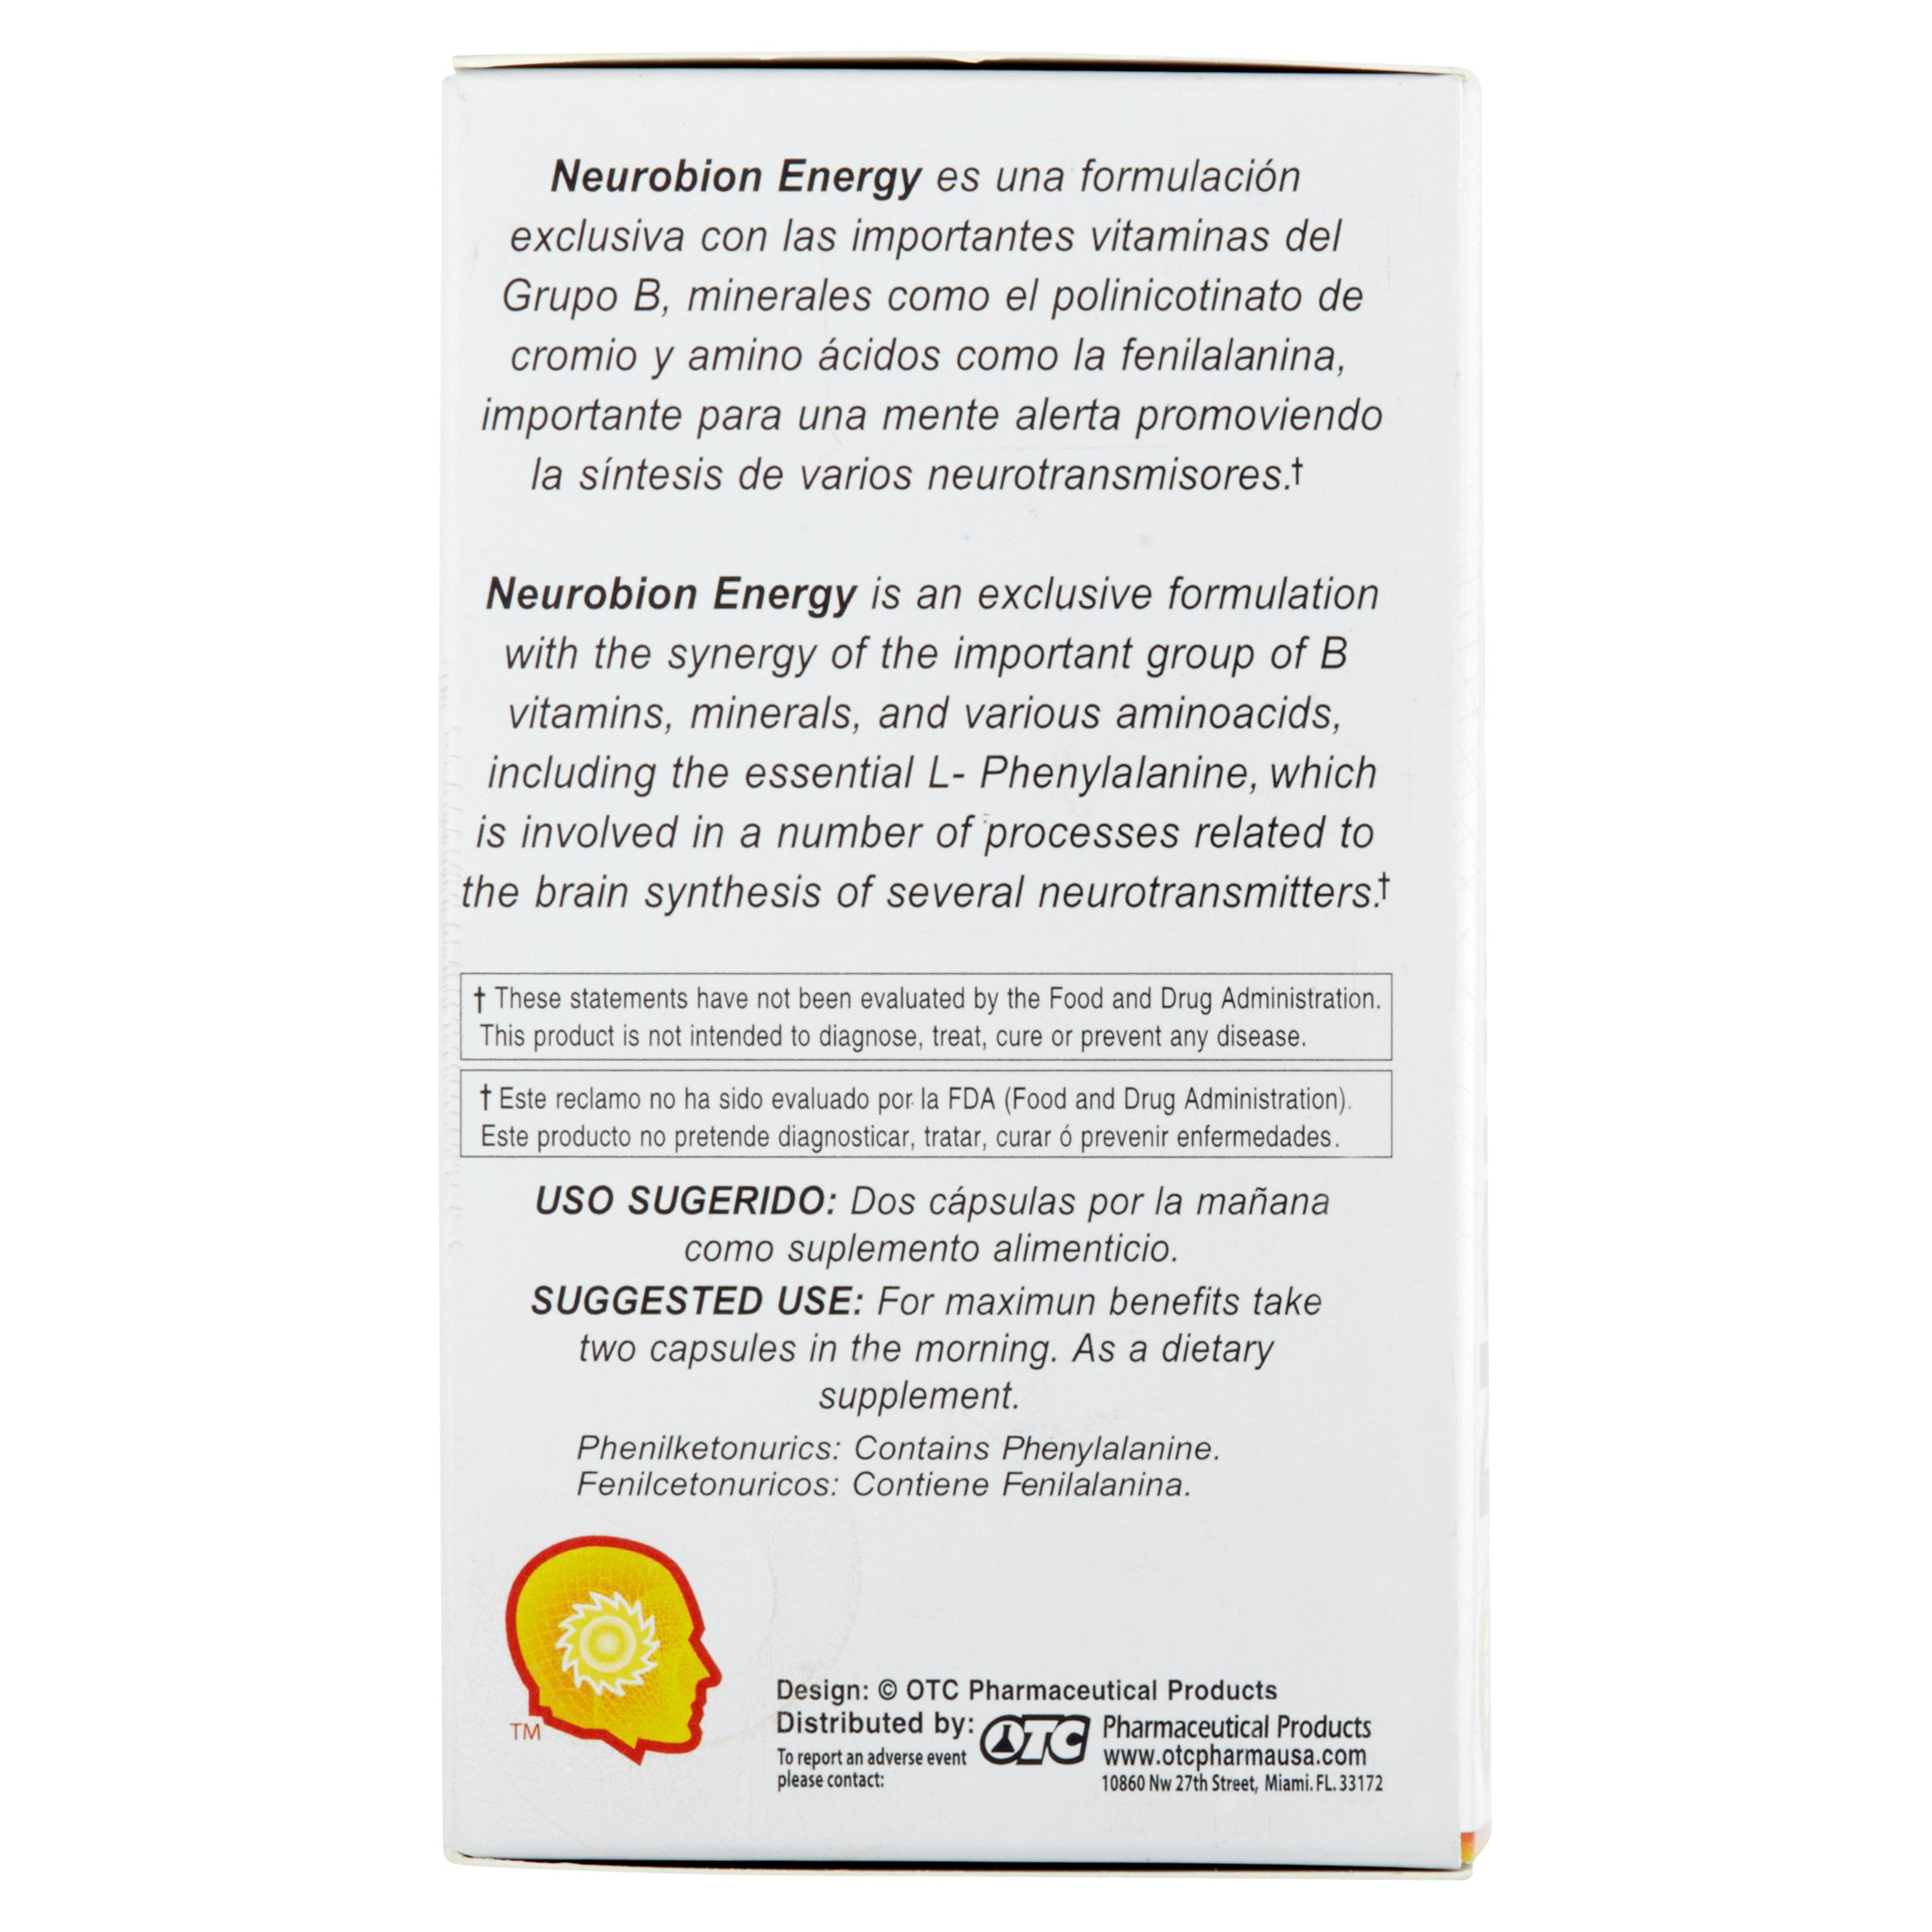 Neurobion Energy Dietary Supplement Capsules, 60 count - Amino Acids,  Vitamins B1, B6, & B12, May Help to Increase Alertness and Reduce Stress